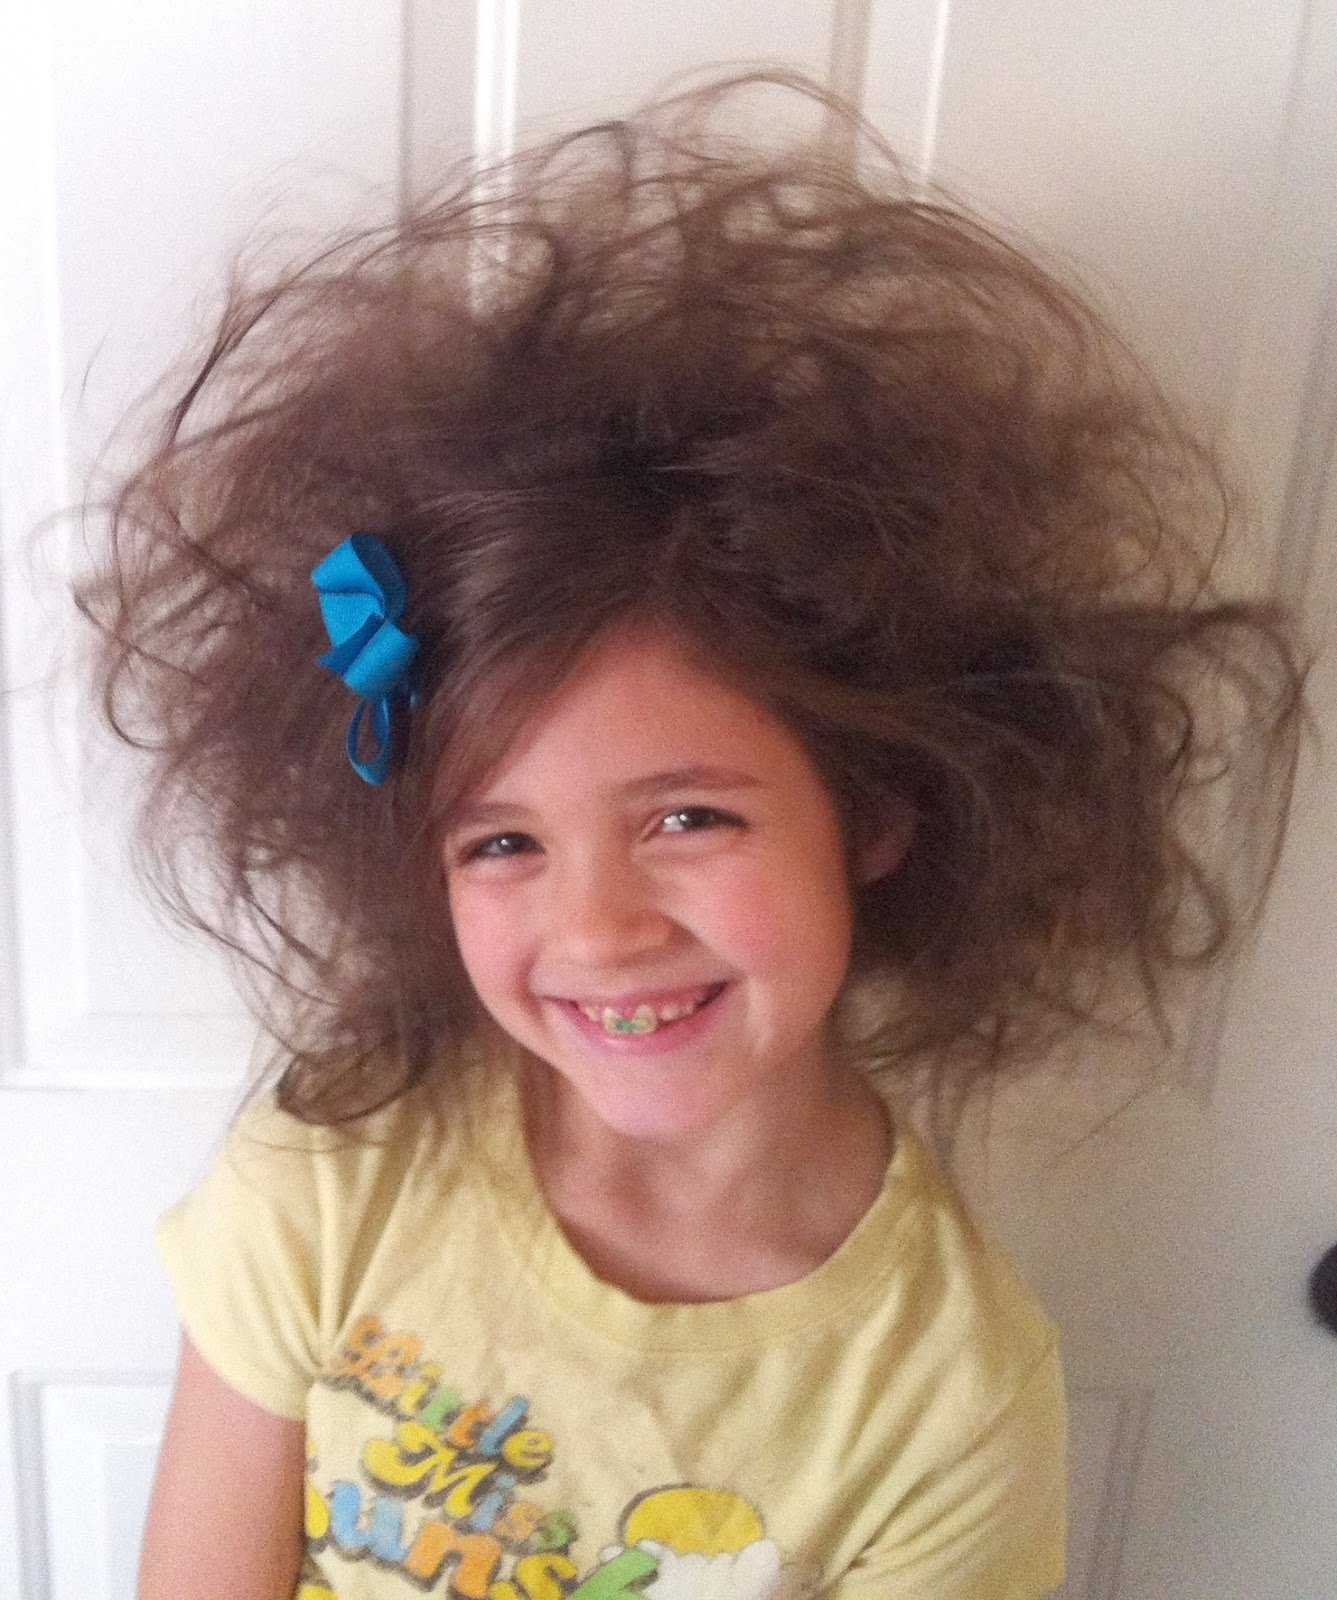 10 Perfect Easy Crazy Hair Day Ideas bowsweet tuesday tips crazy hair day ideas 1 2020